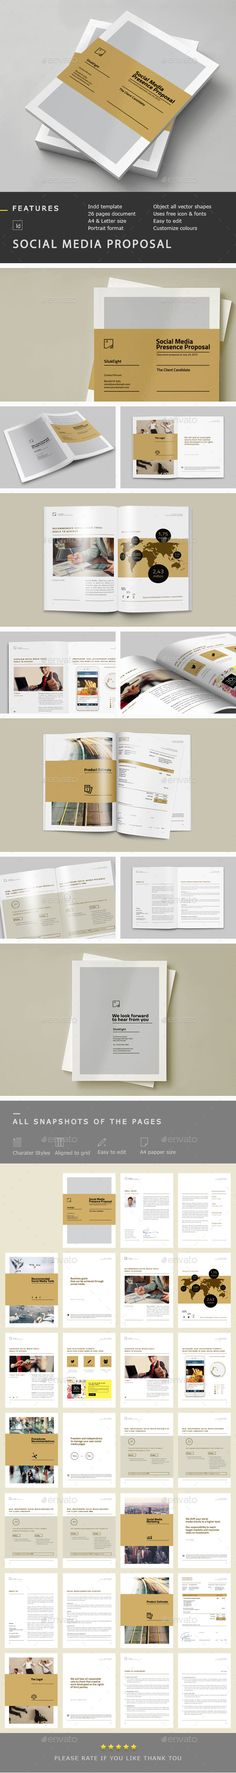 Web Design Proposal Proposals, Proposal templates and Layouts - what is in a design proposal